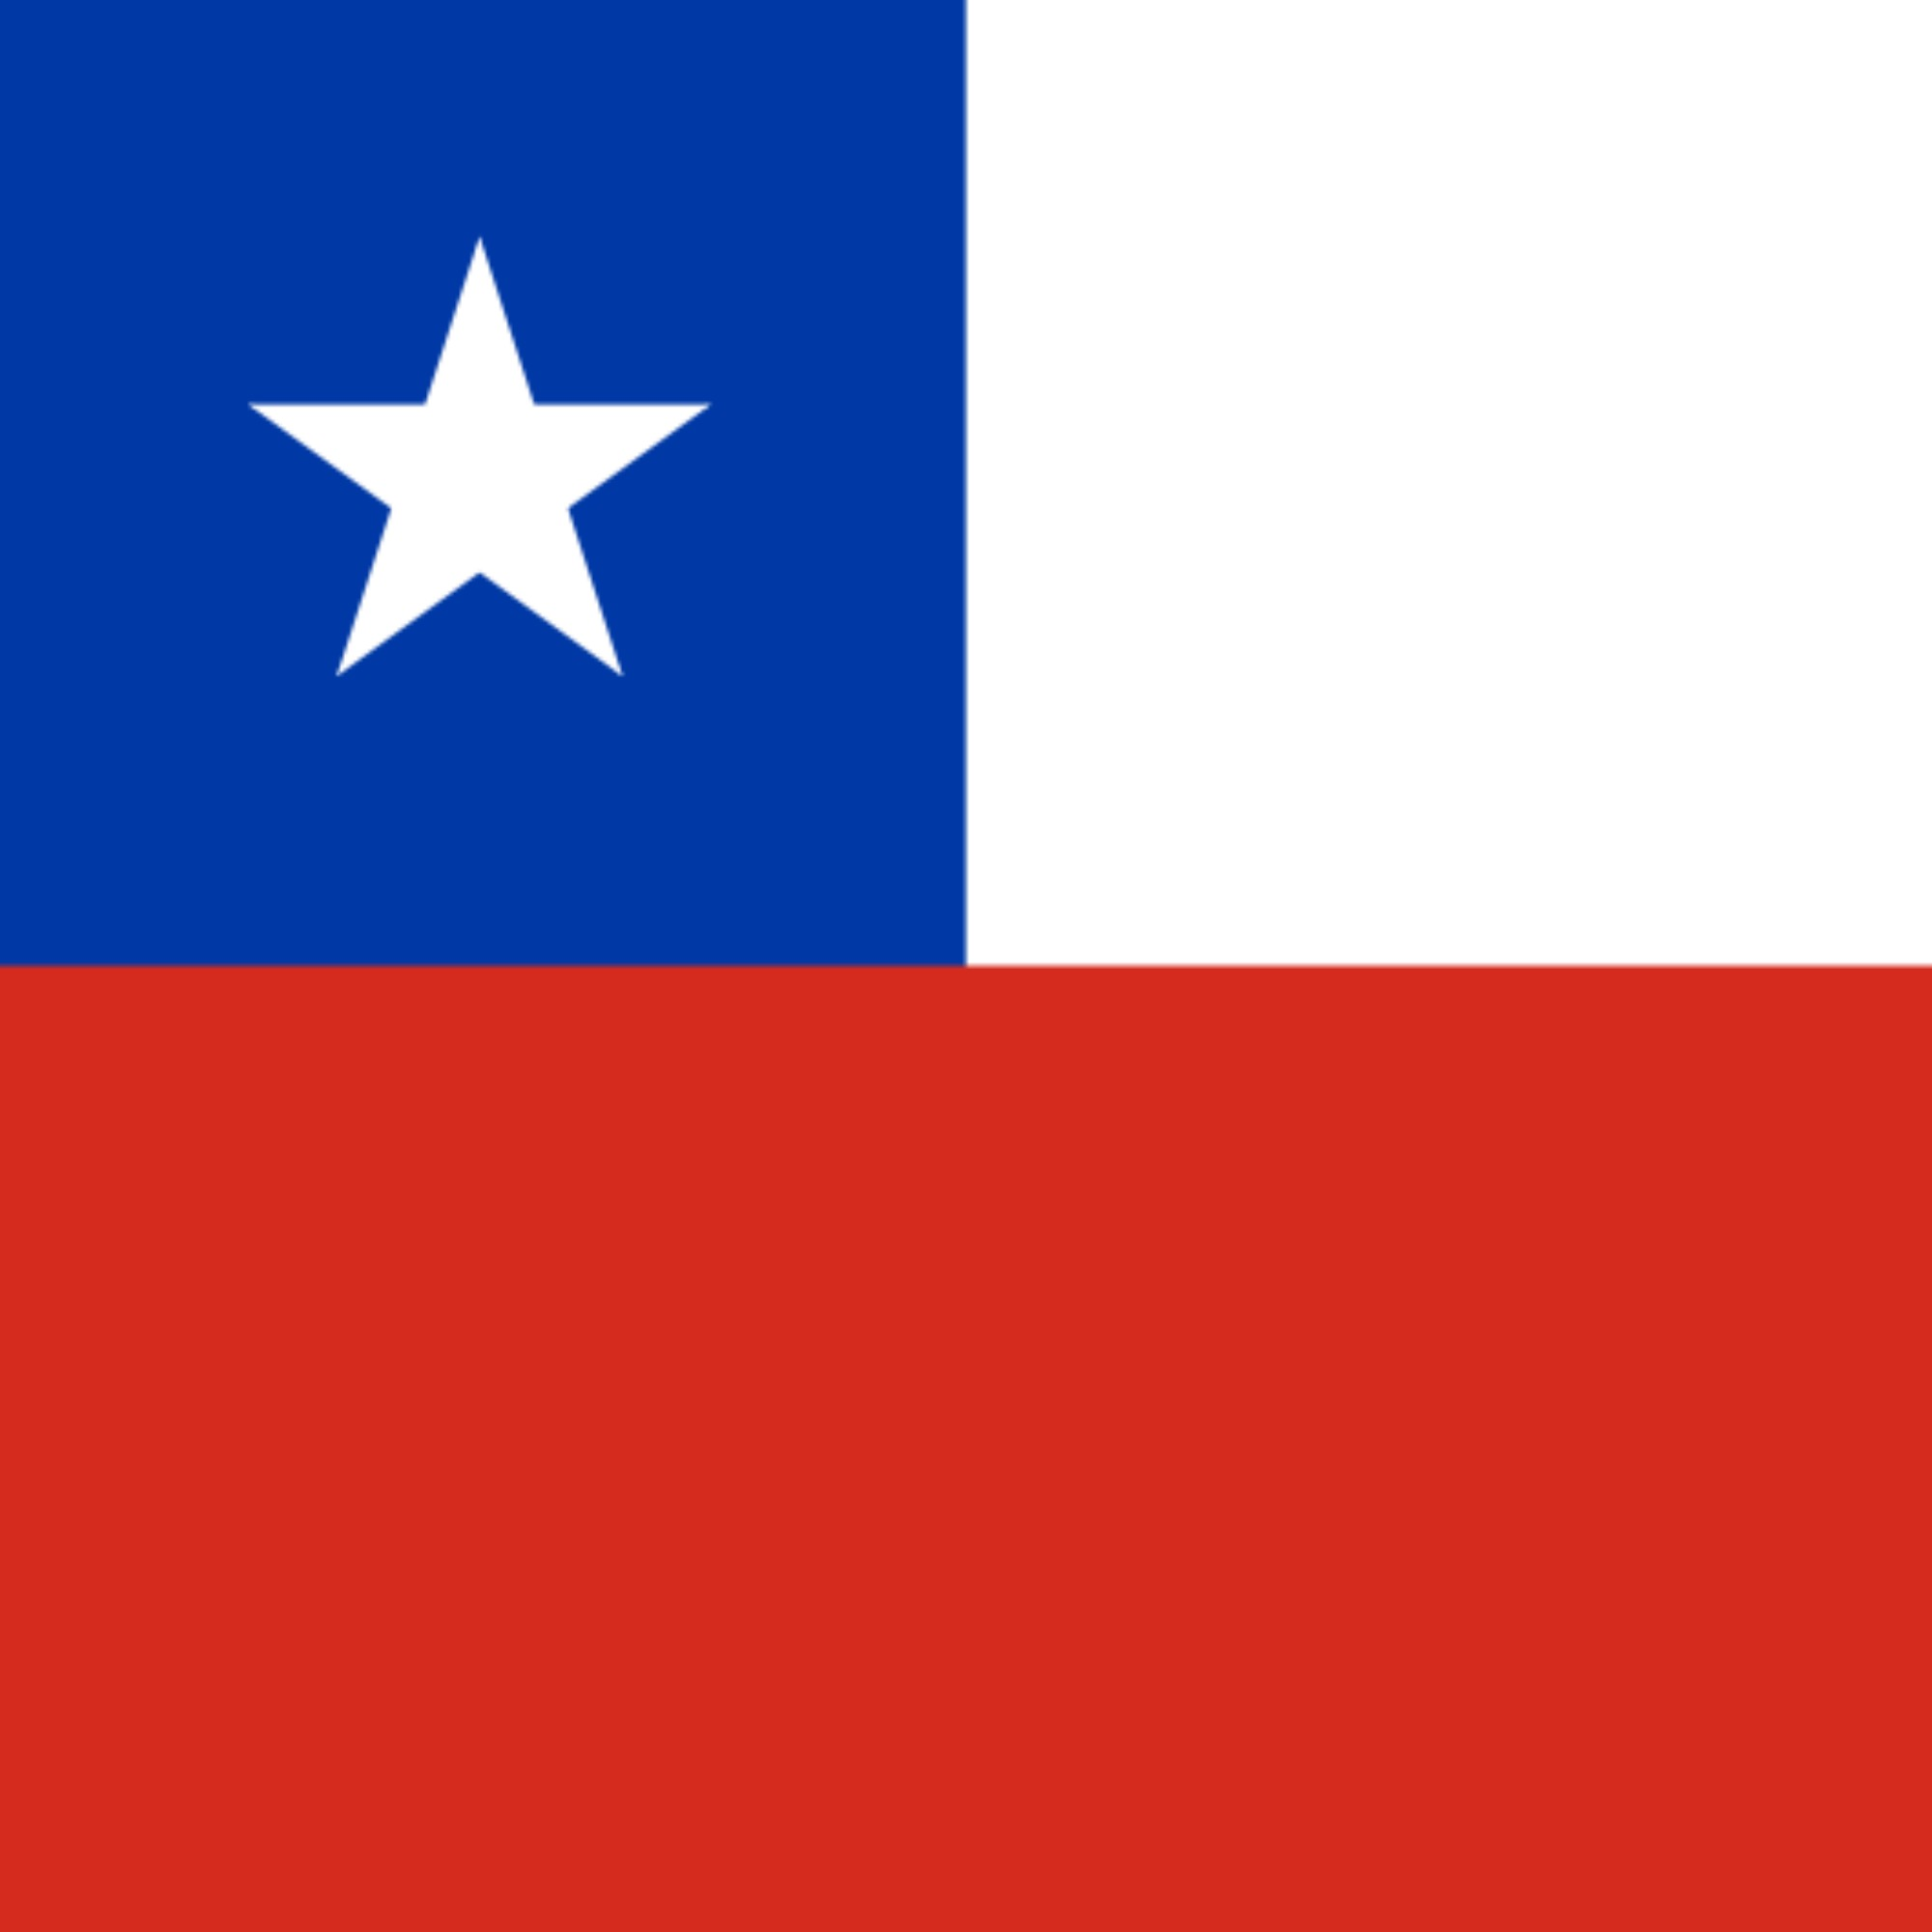 Honorary Consulate of Chile (Valencia)